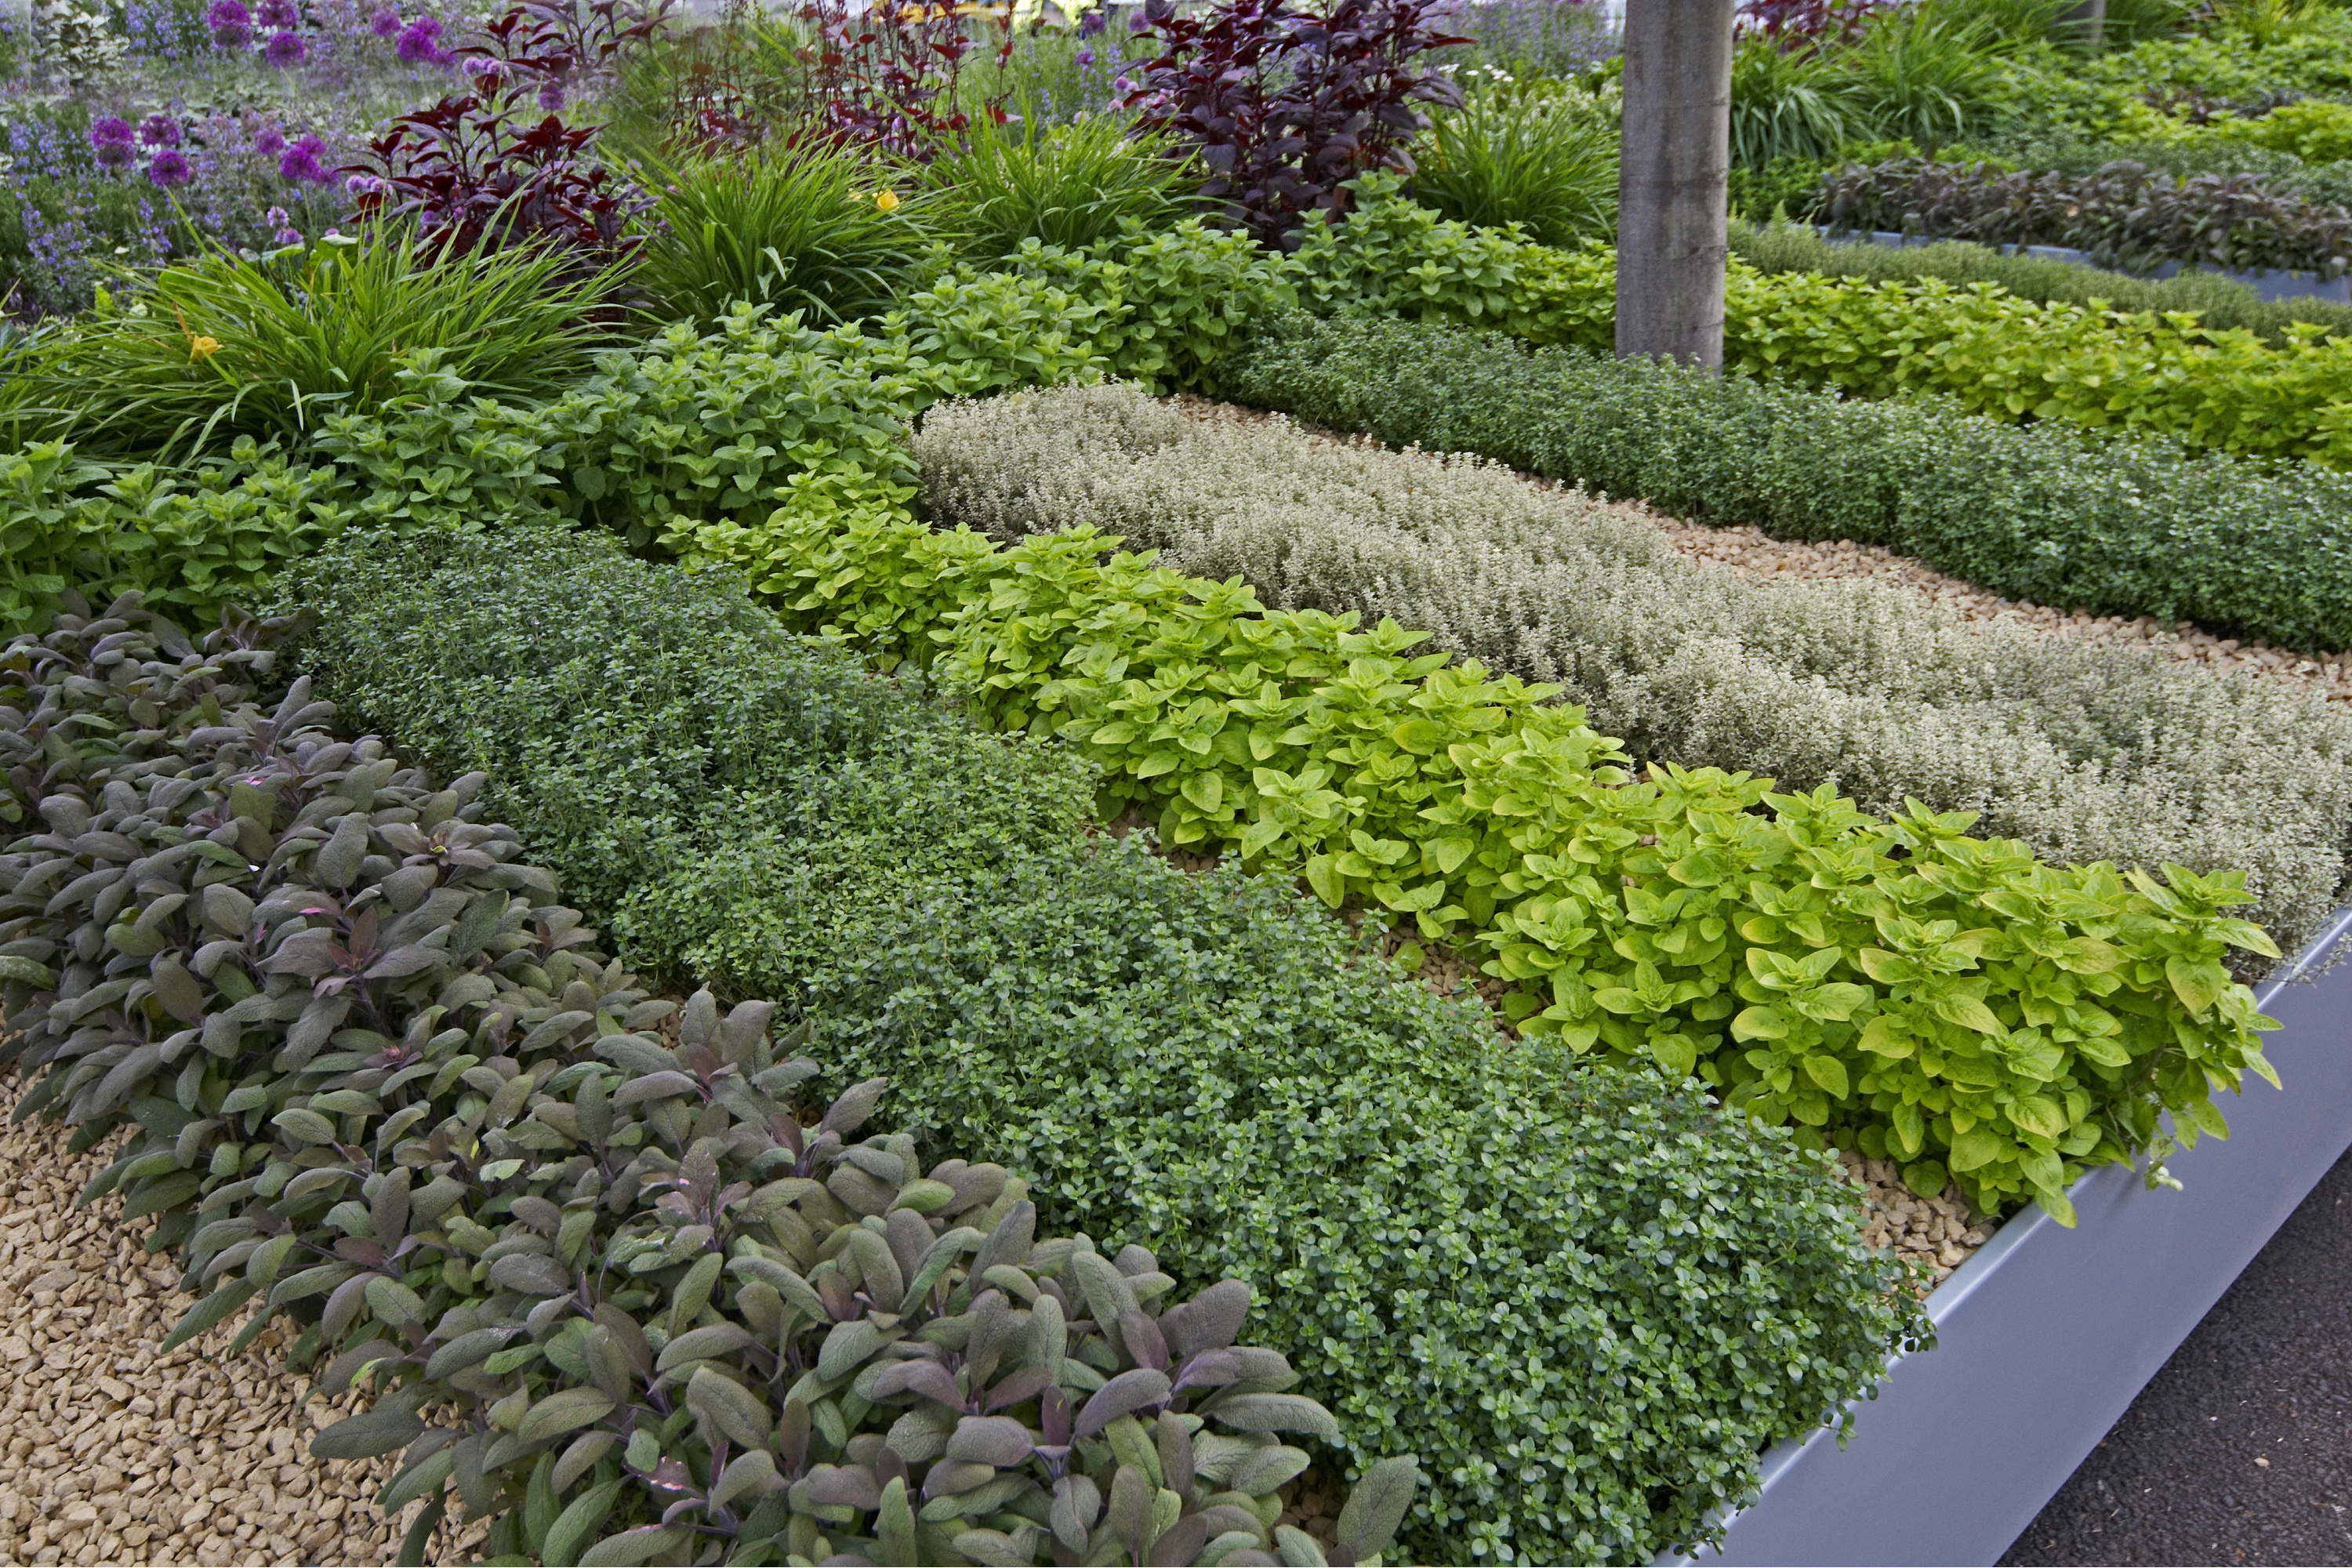 Are you planting a herb garden? You'll want to know these tips for companion planting herbs. These tips will make sure your herbs grow as well as possible.